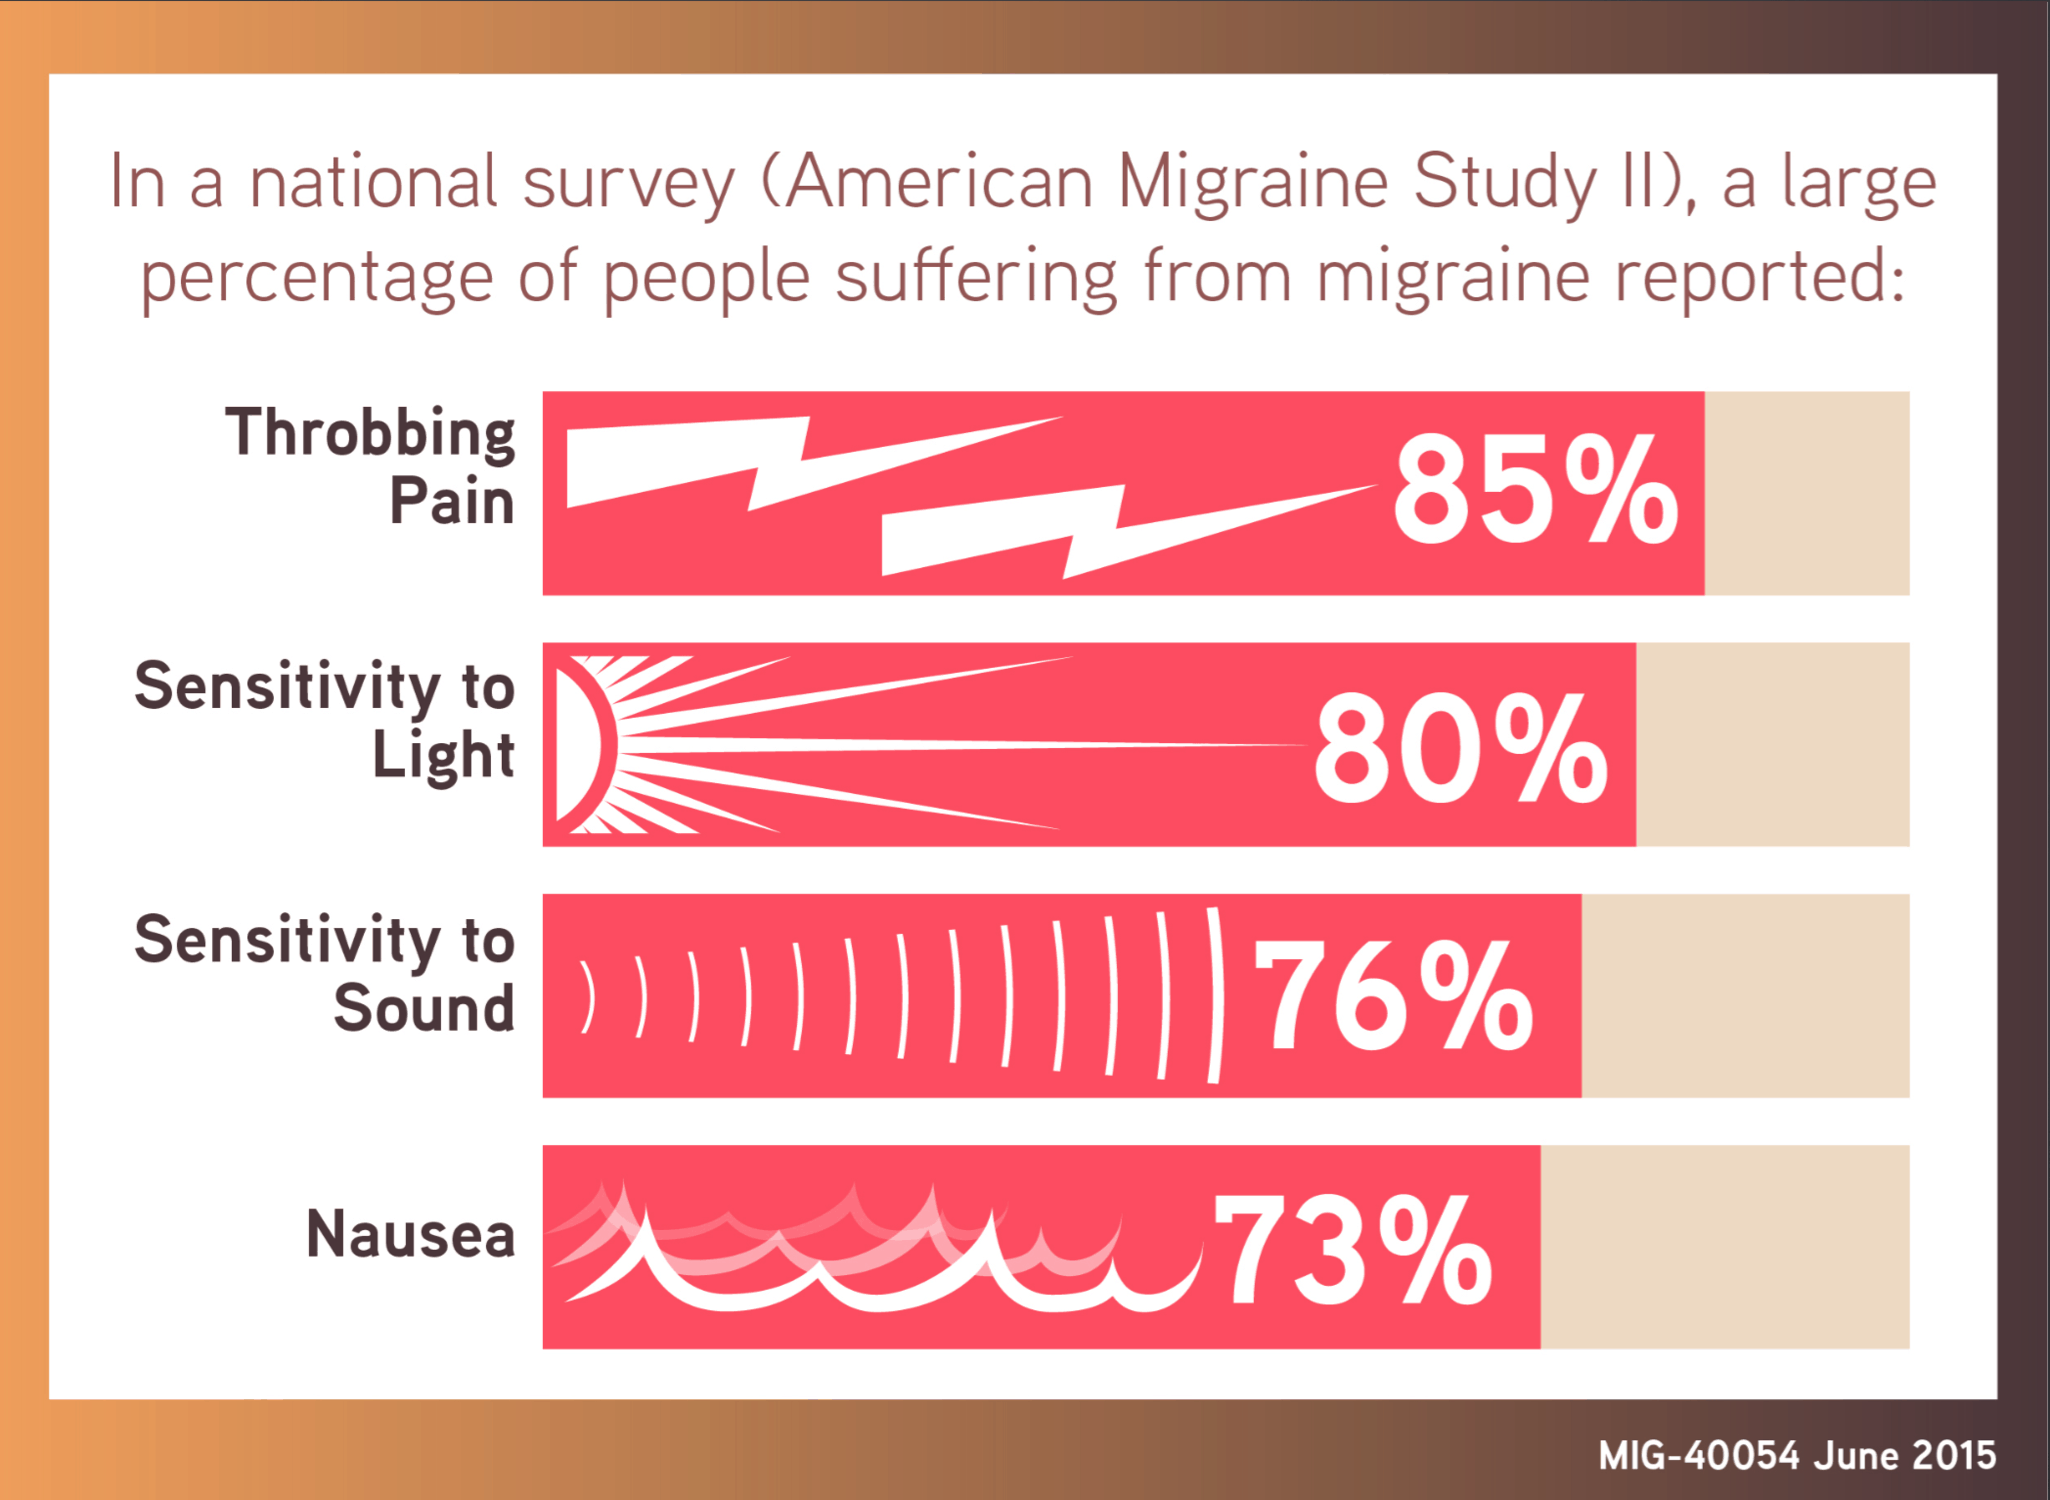 migraine infographic - national survey